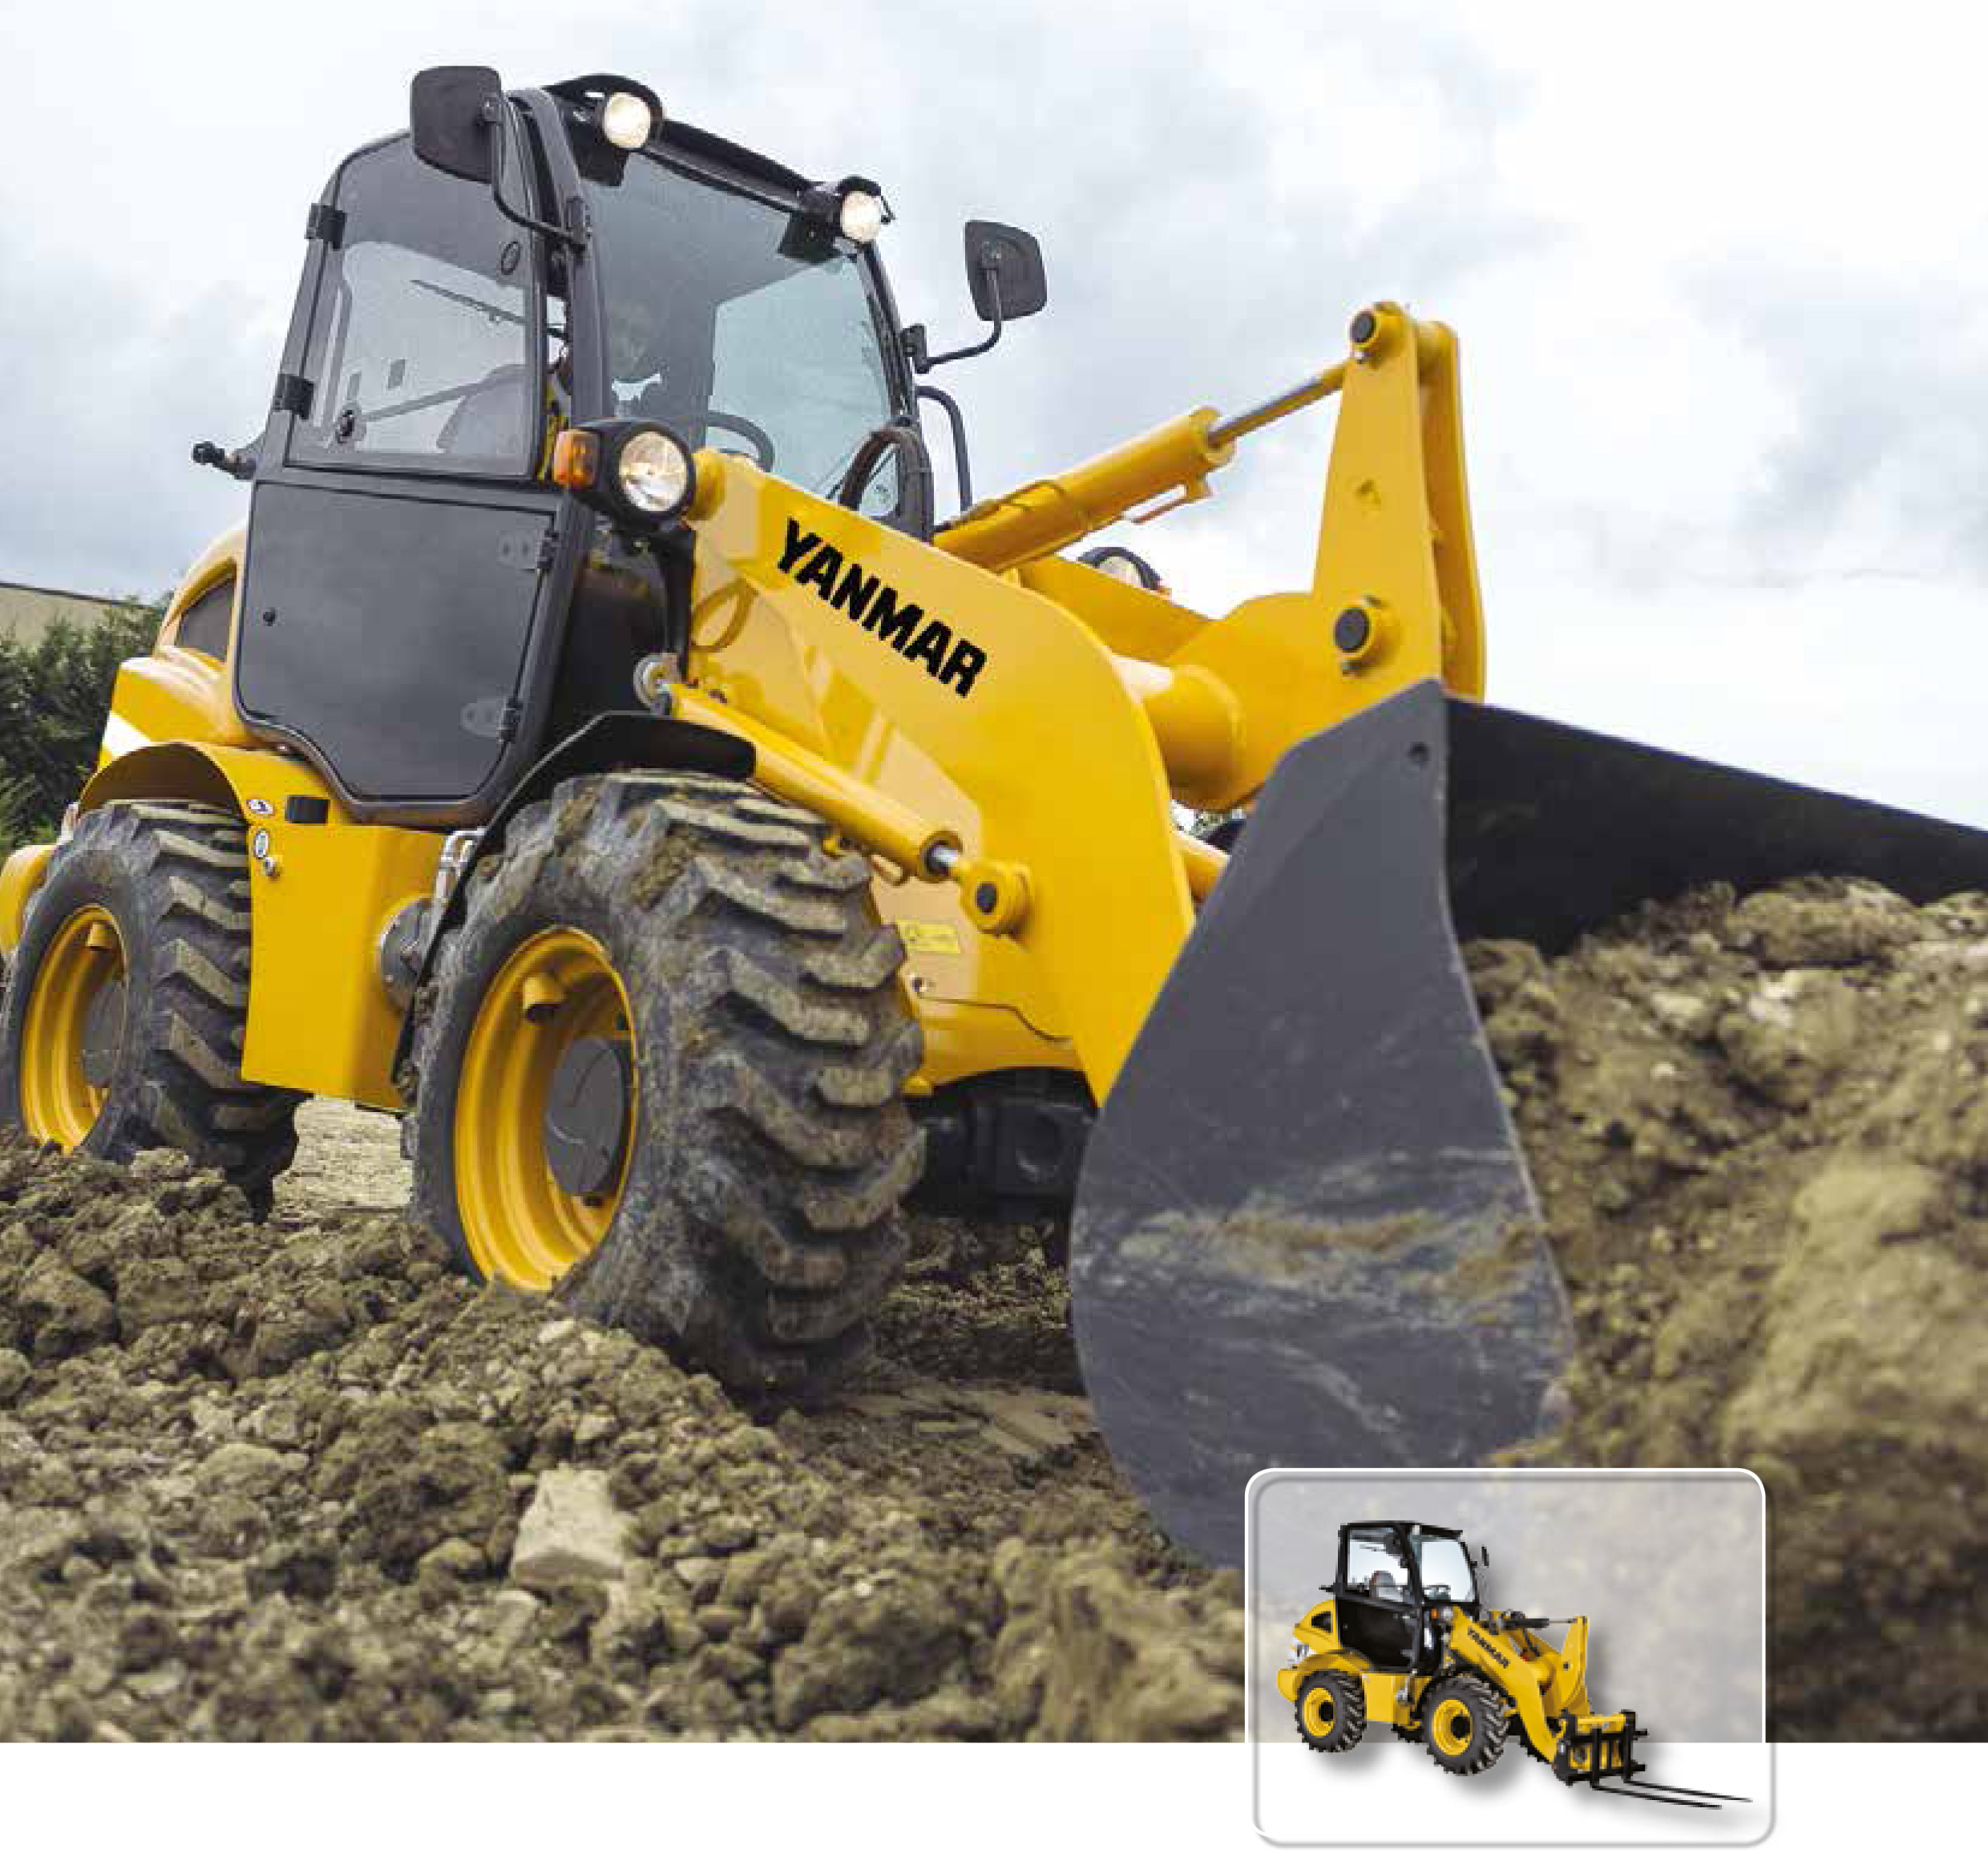 Yanmar 1300d Tractor Parts : Yanmar loader parts pictures to pin on pinterest thepinsta